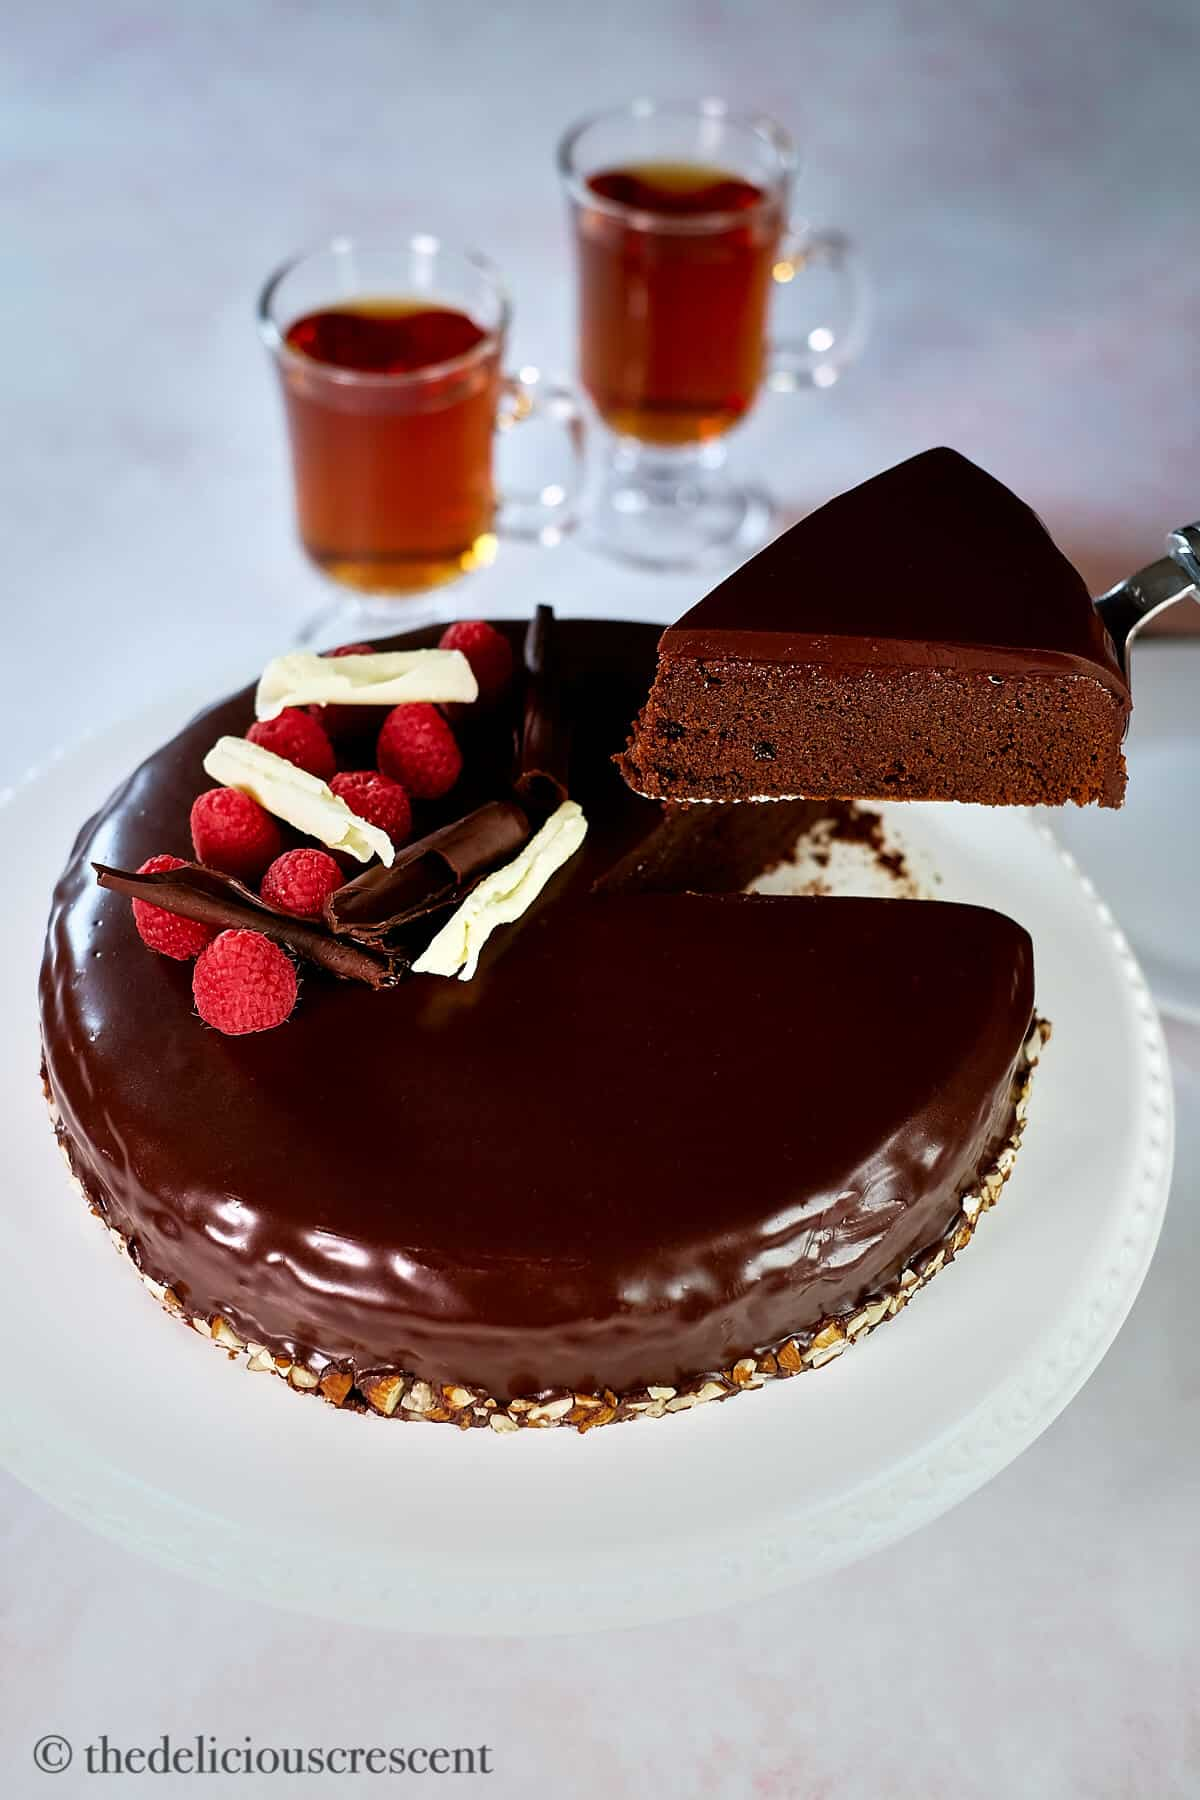 A piece of chocolate almond cake being lifted with a serving utensil.